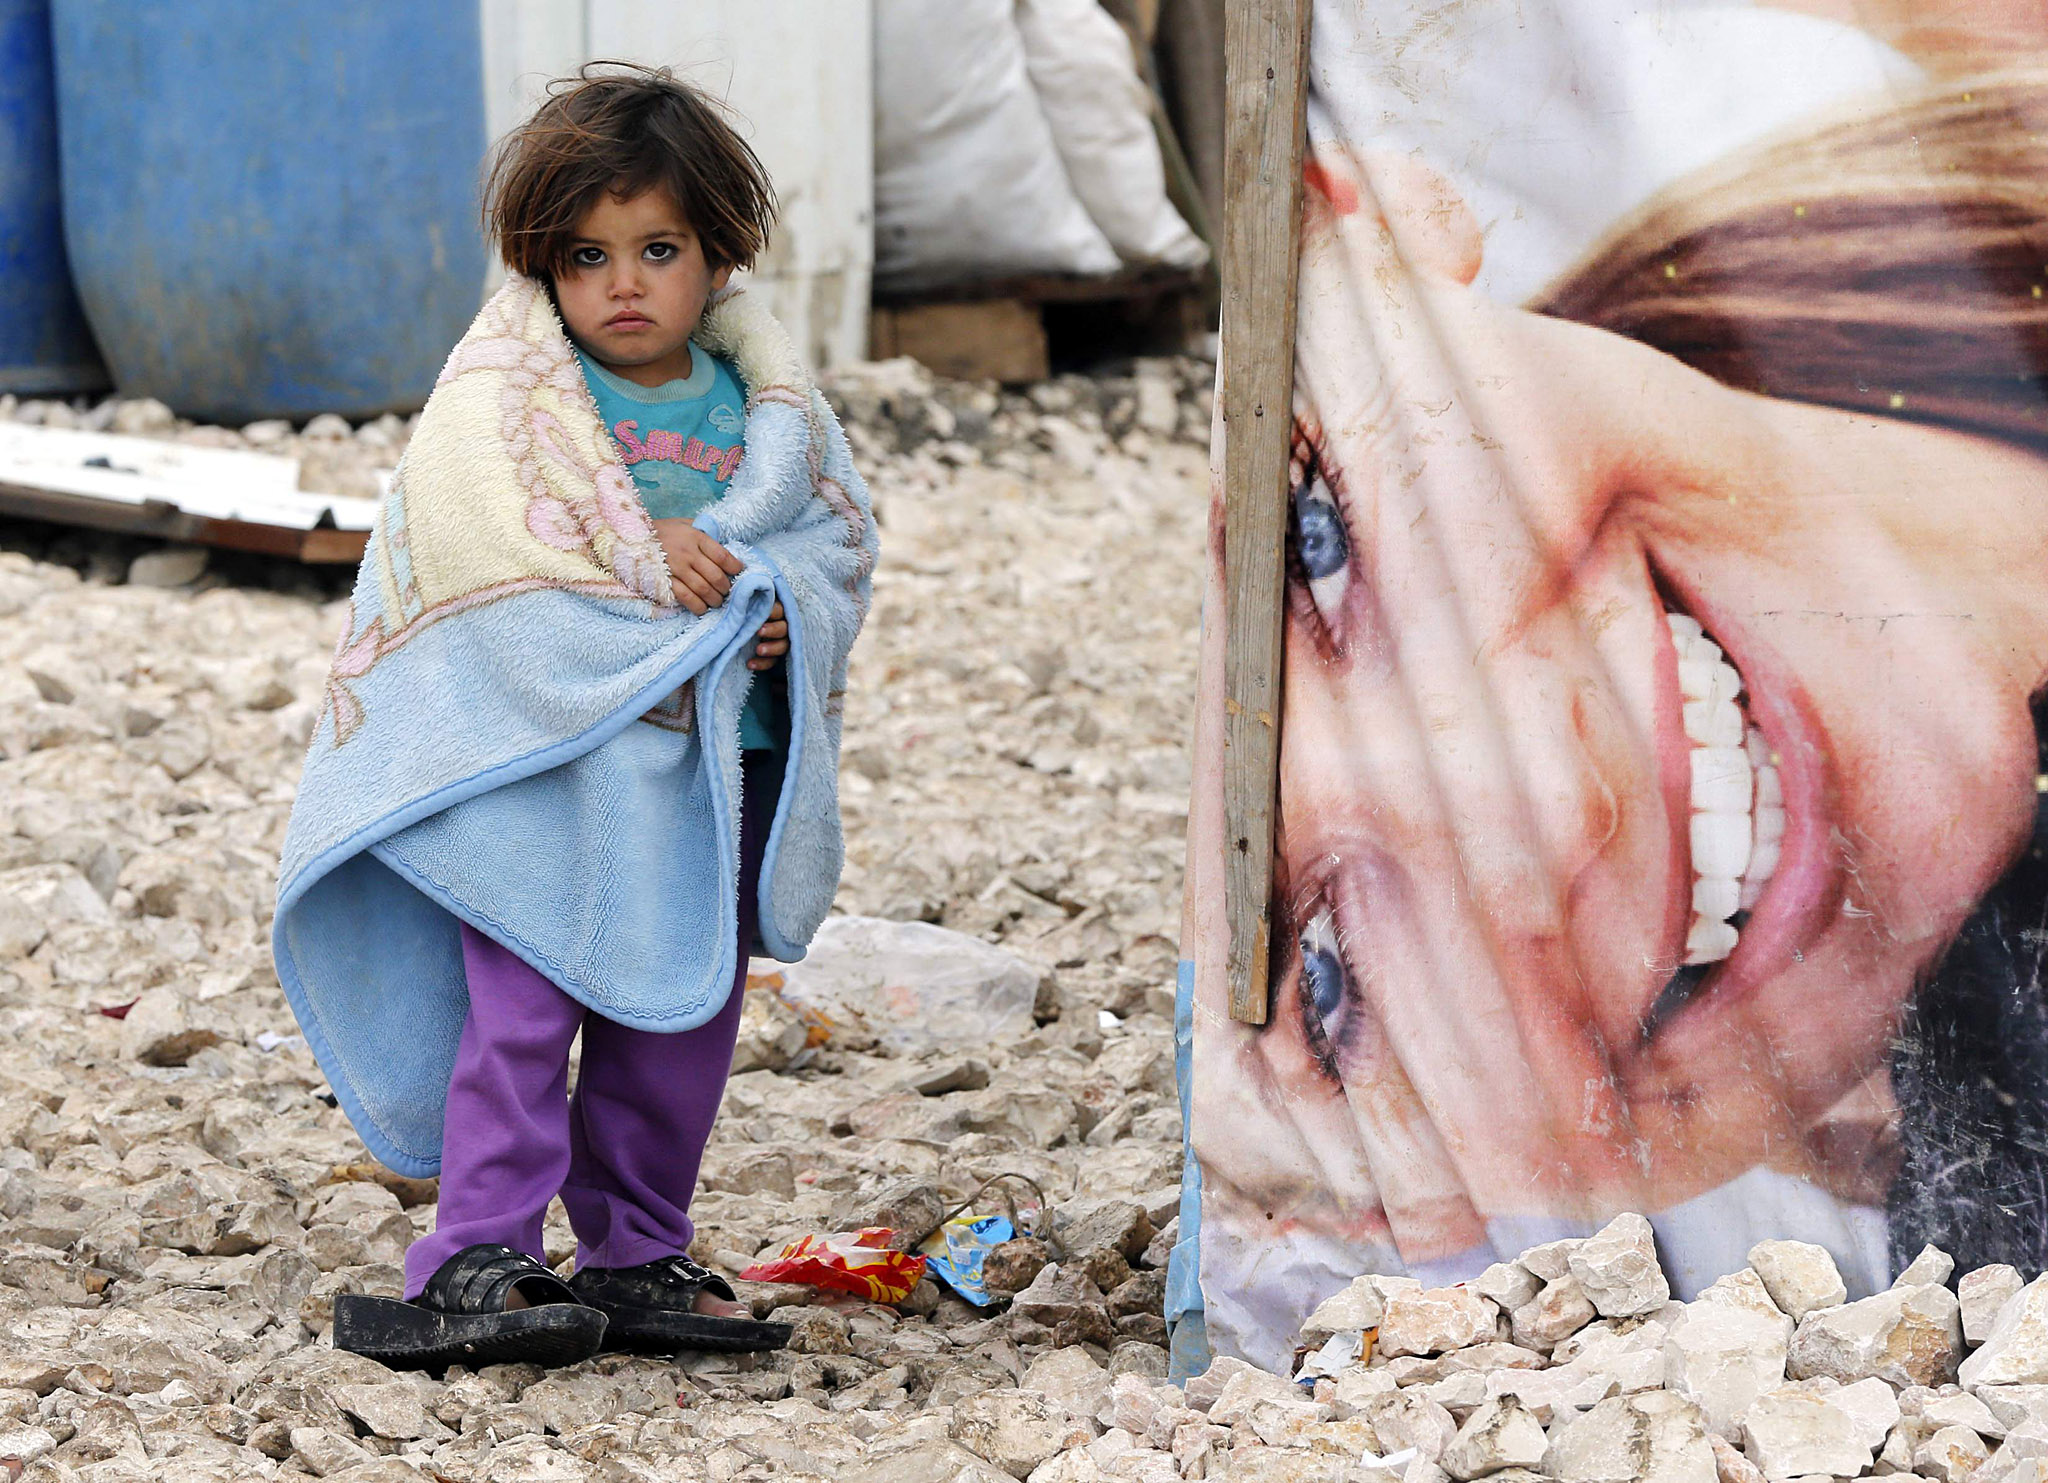 A Syrian refugee girl covers herself with a blanket as she stands outside tents at a makeshift settlement in Bar Elias in the Bekaa valley...A Syrian refugee girl covers herself with a blanket as she stands outside tents at a makeshift settlement in Bar Elias in the Bekaa valley January 5, 2015. Lebanon enforced new immigration controls at the Syrian border on Monday in a move to gain control of the steady stream of refugees from its much larger neighbour.   REUTERS/Mohamed Azakir (LEBANON - Tags: SOCIETY IMMIGRATION CIVIL UNREST CONFLICT POLITICS)